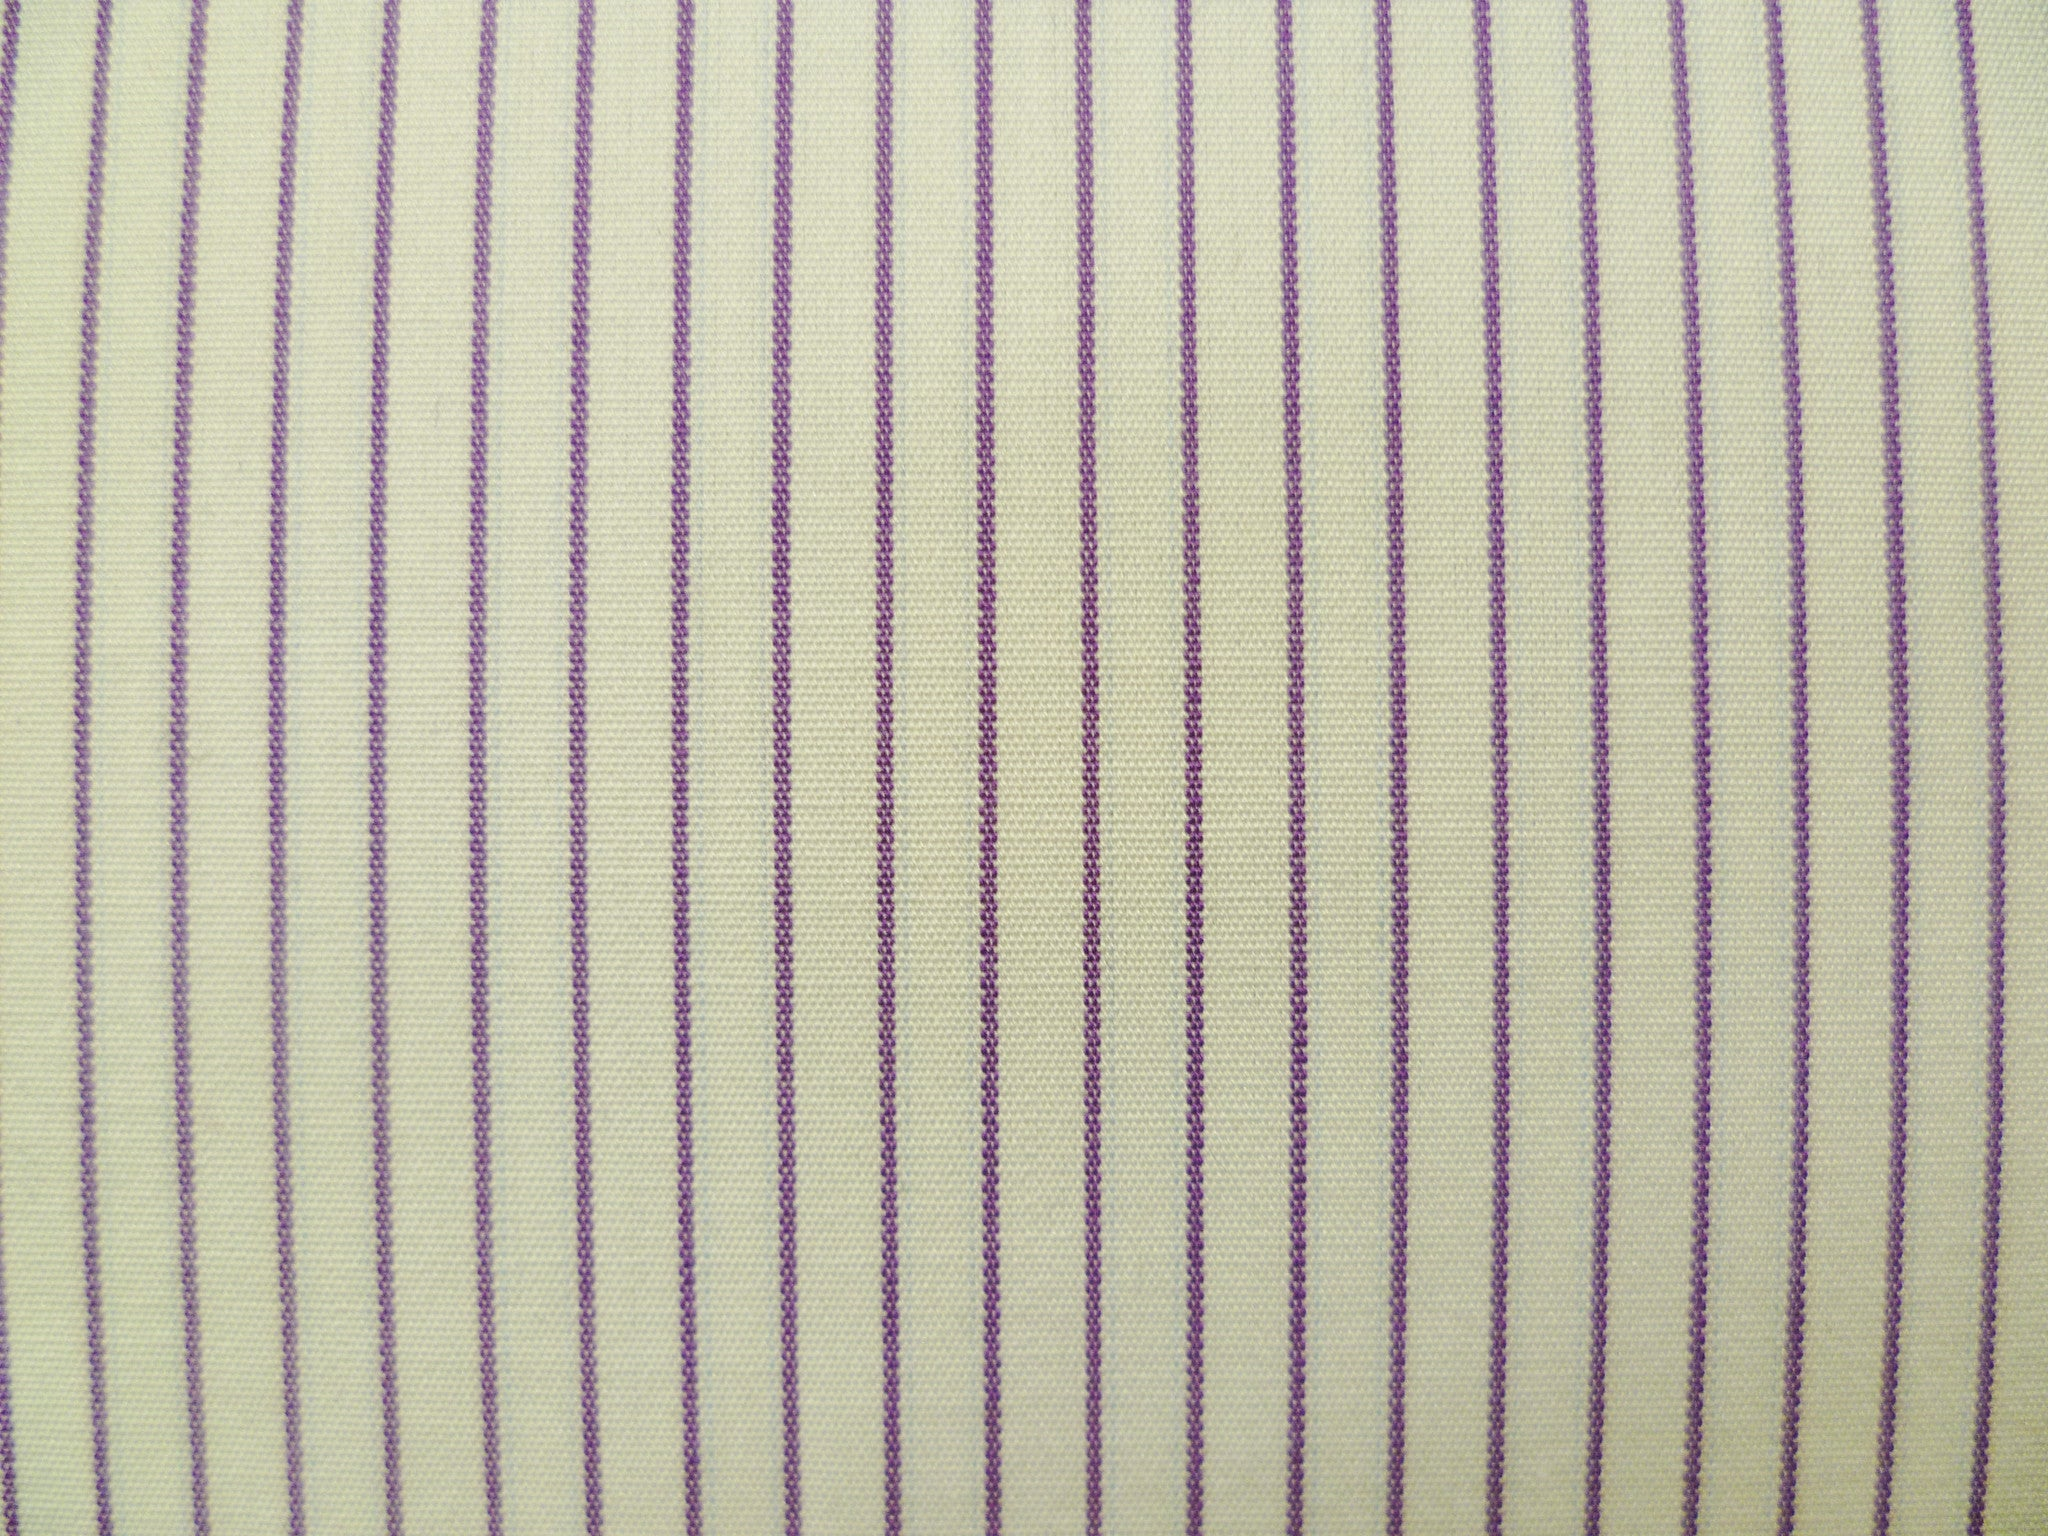 Plum and White Striped Cotton